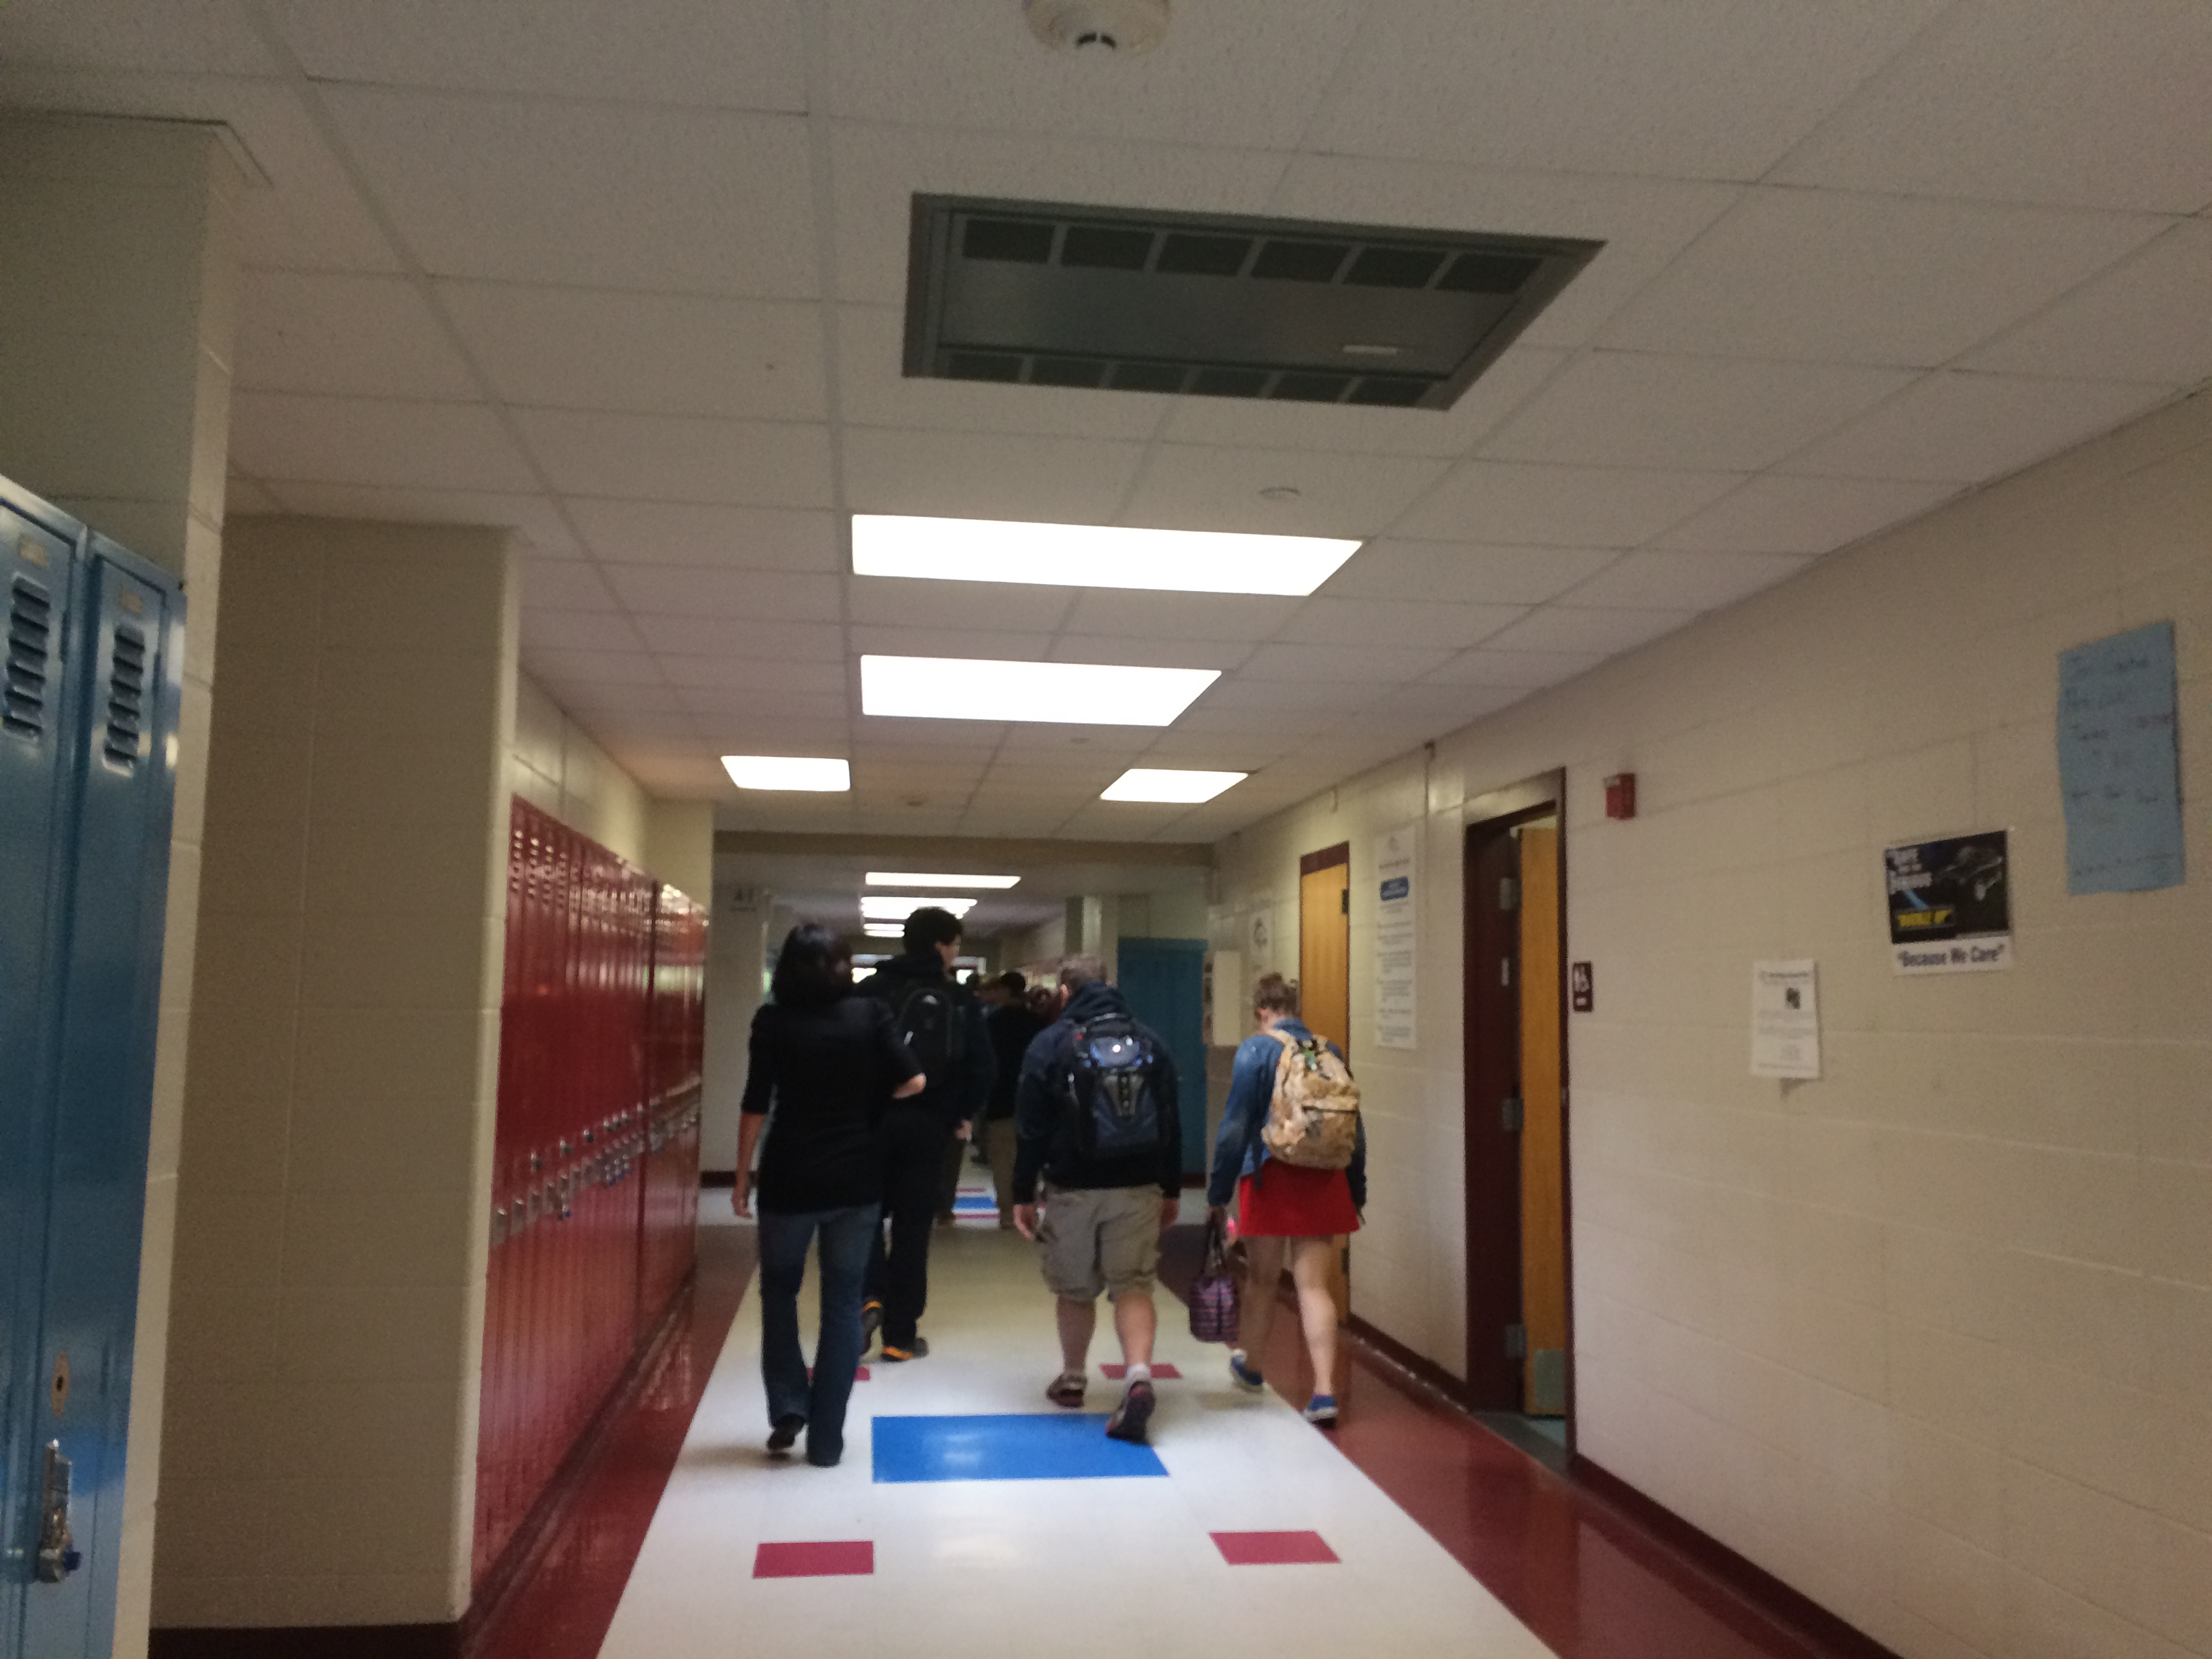 Students head to class at Burrillville High School.